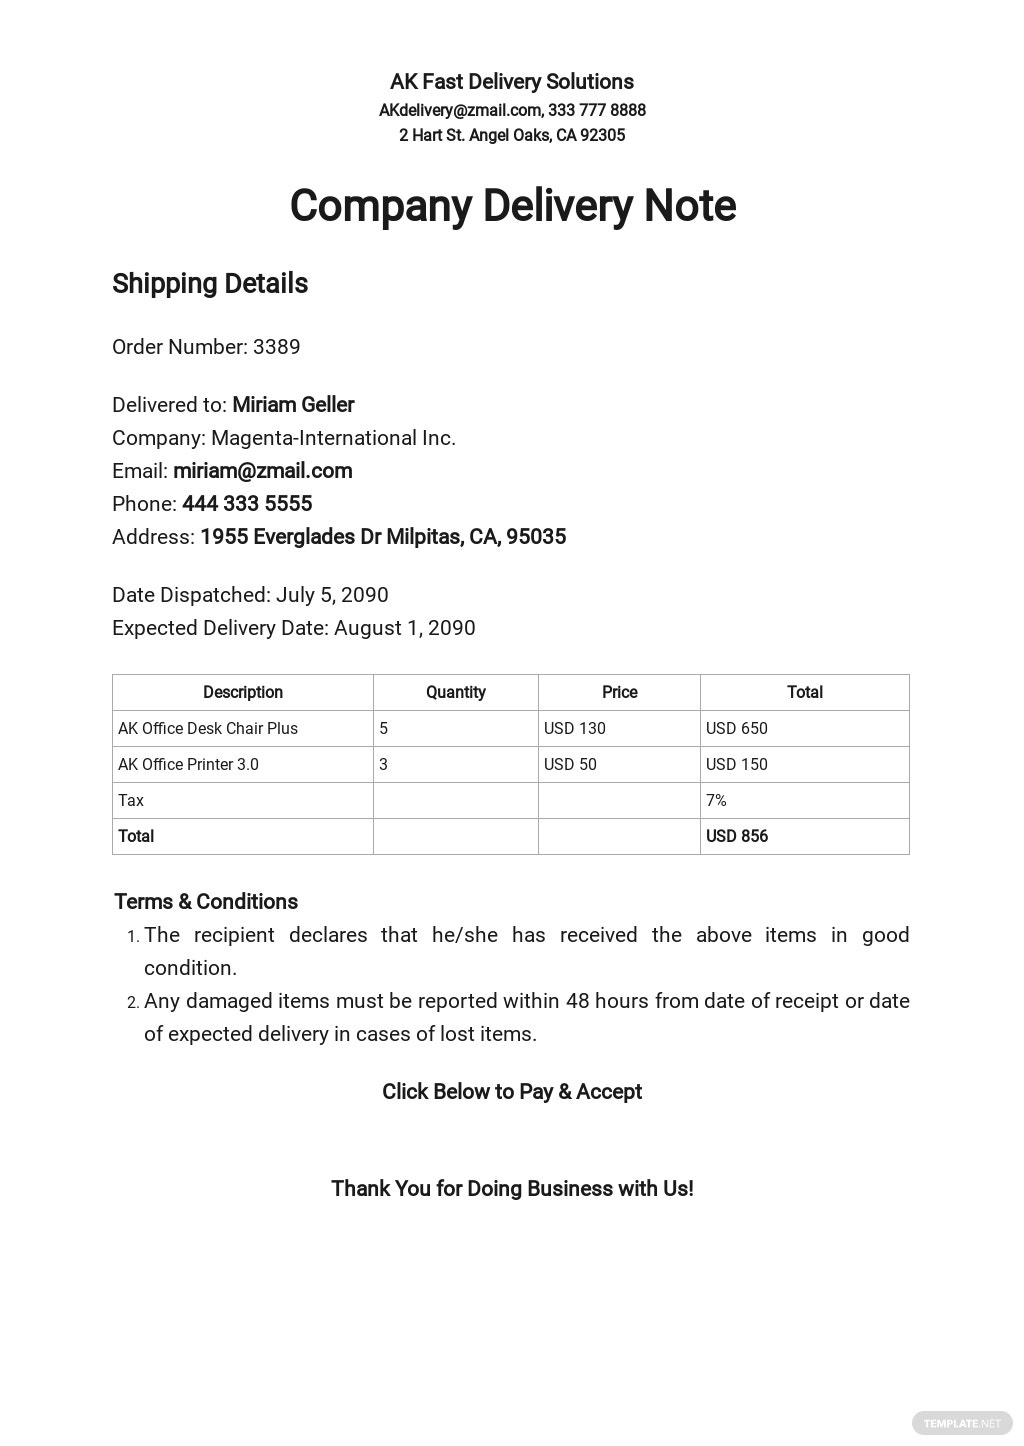 Company Delivery Note Template.jpe